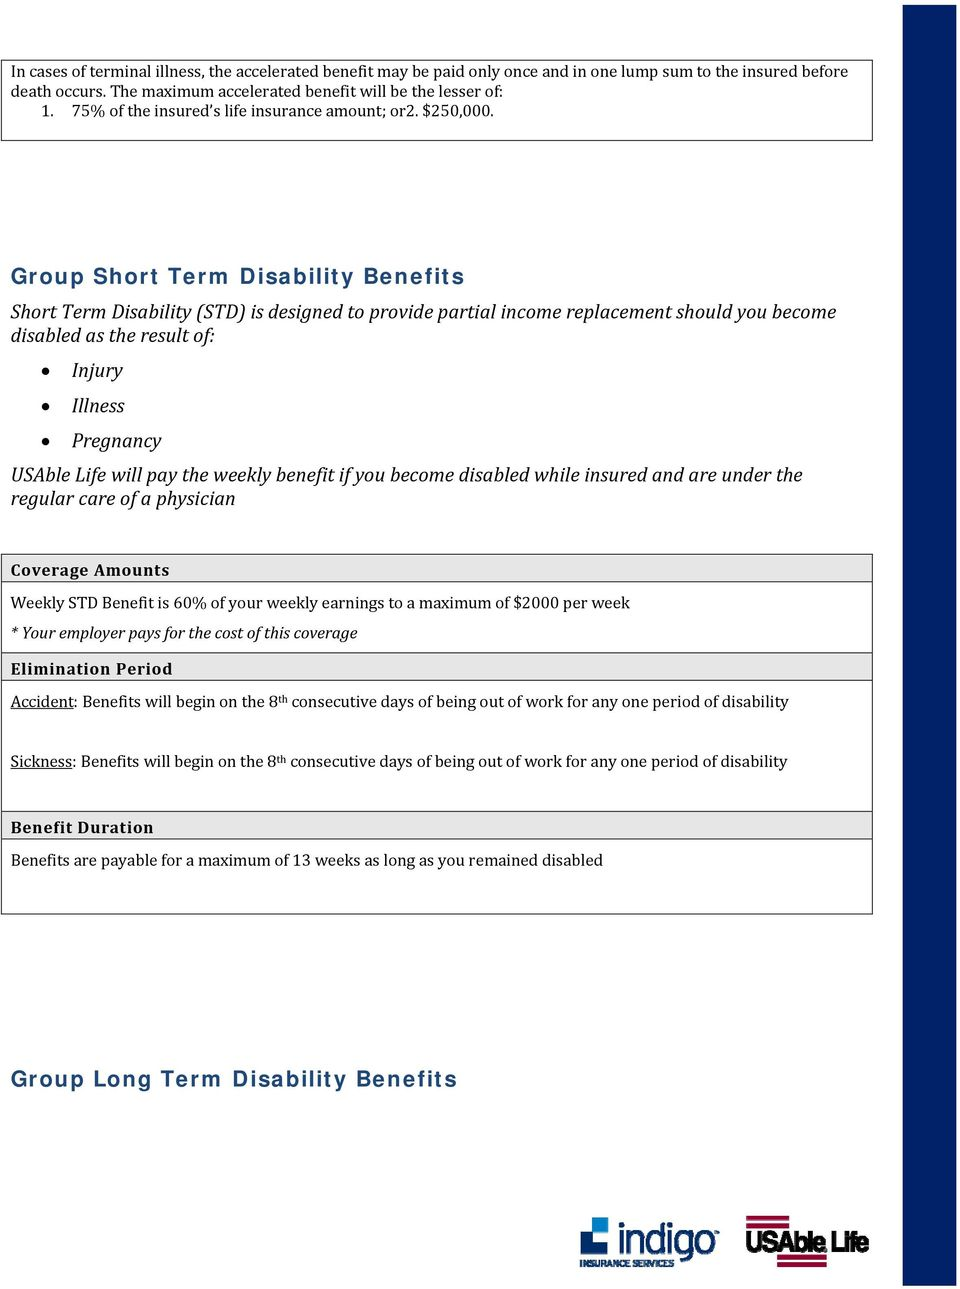 Group Short Term Disability Benefits Short Term Disability (STD) is designed to provide partial income replacement should you become disabled as the result of: Injury Illness Pregnancy USAble Life